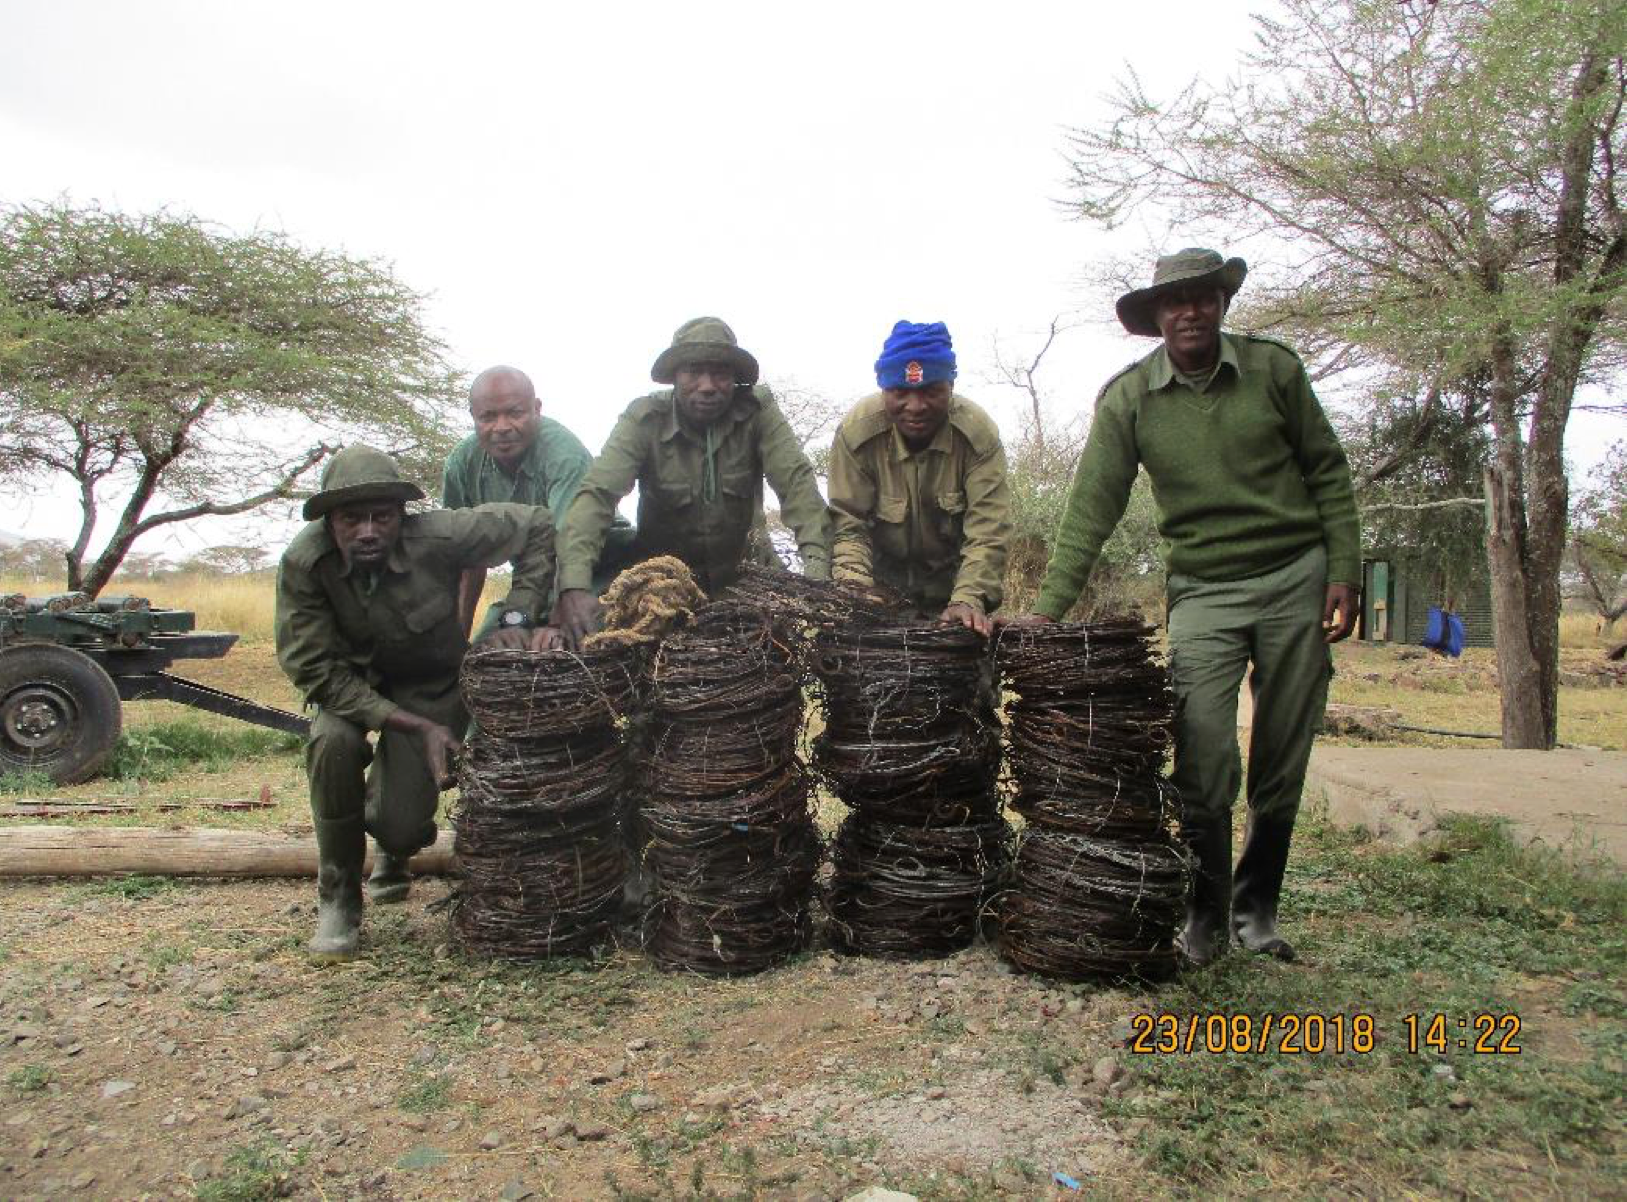 The Serengeti de-snaring team with snares from 10 days patrolling